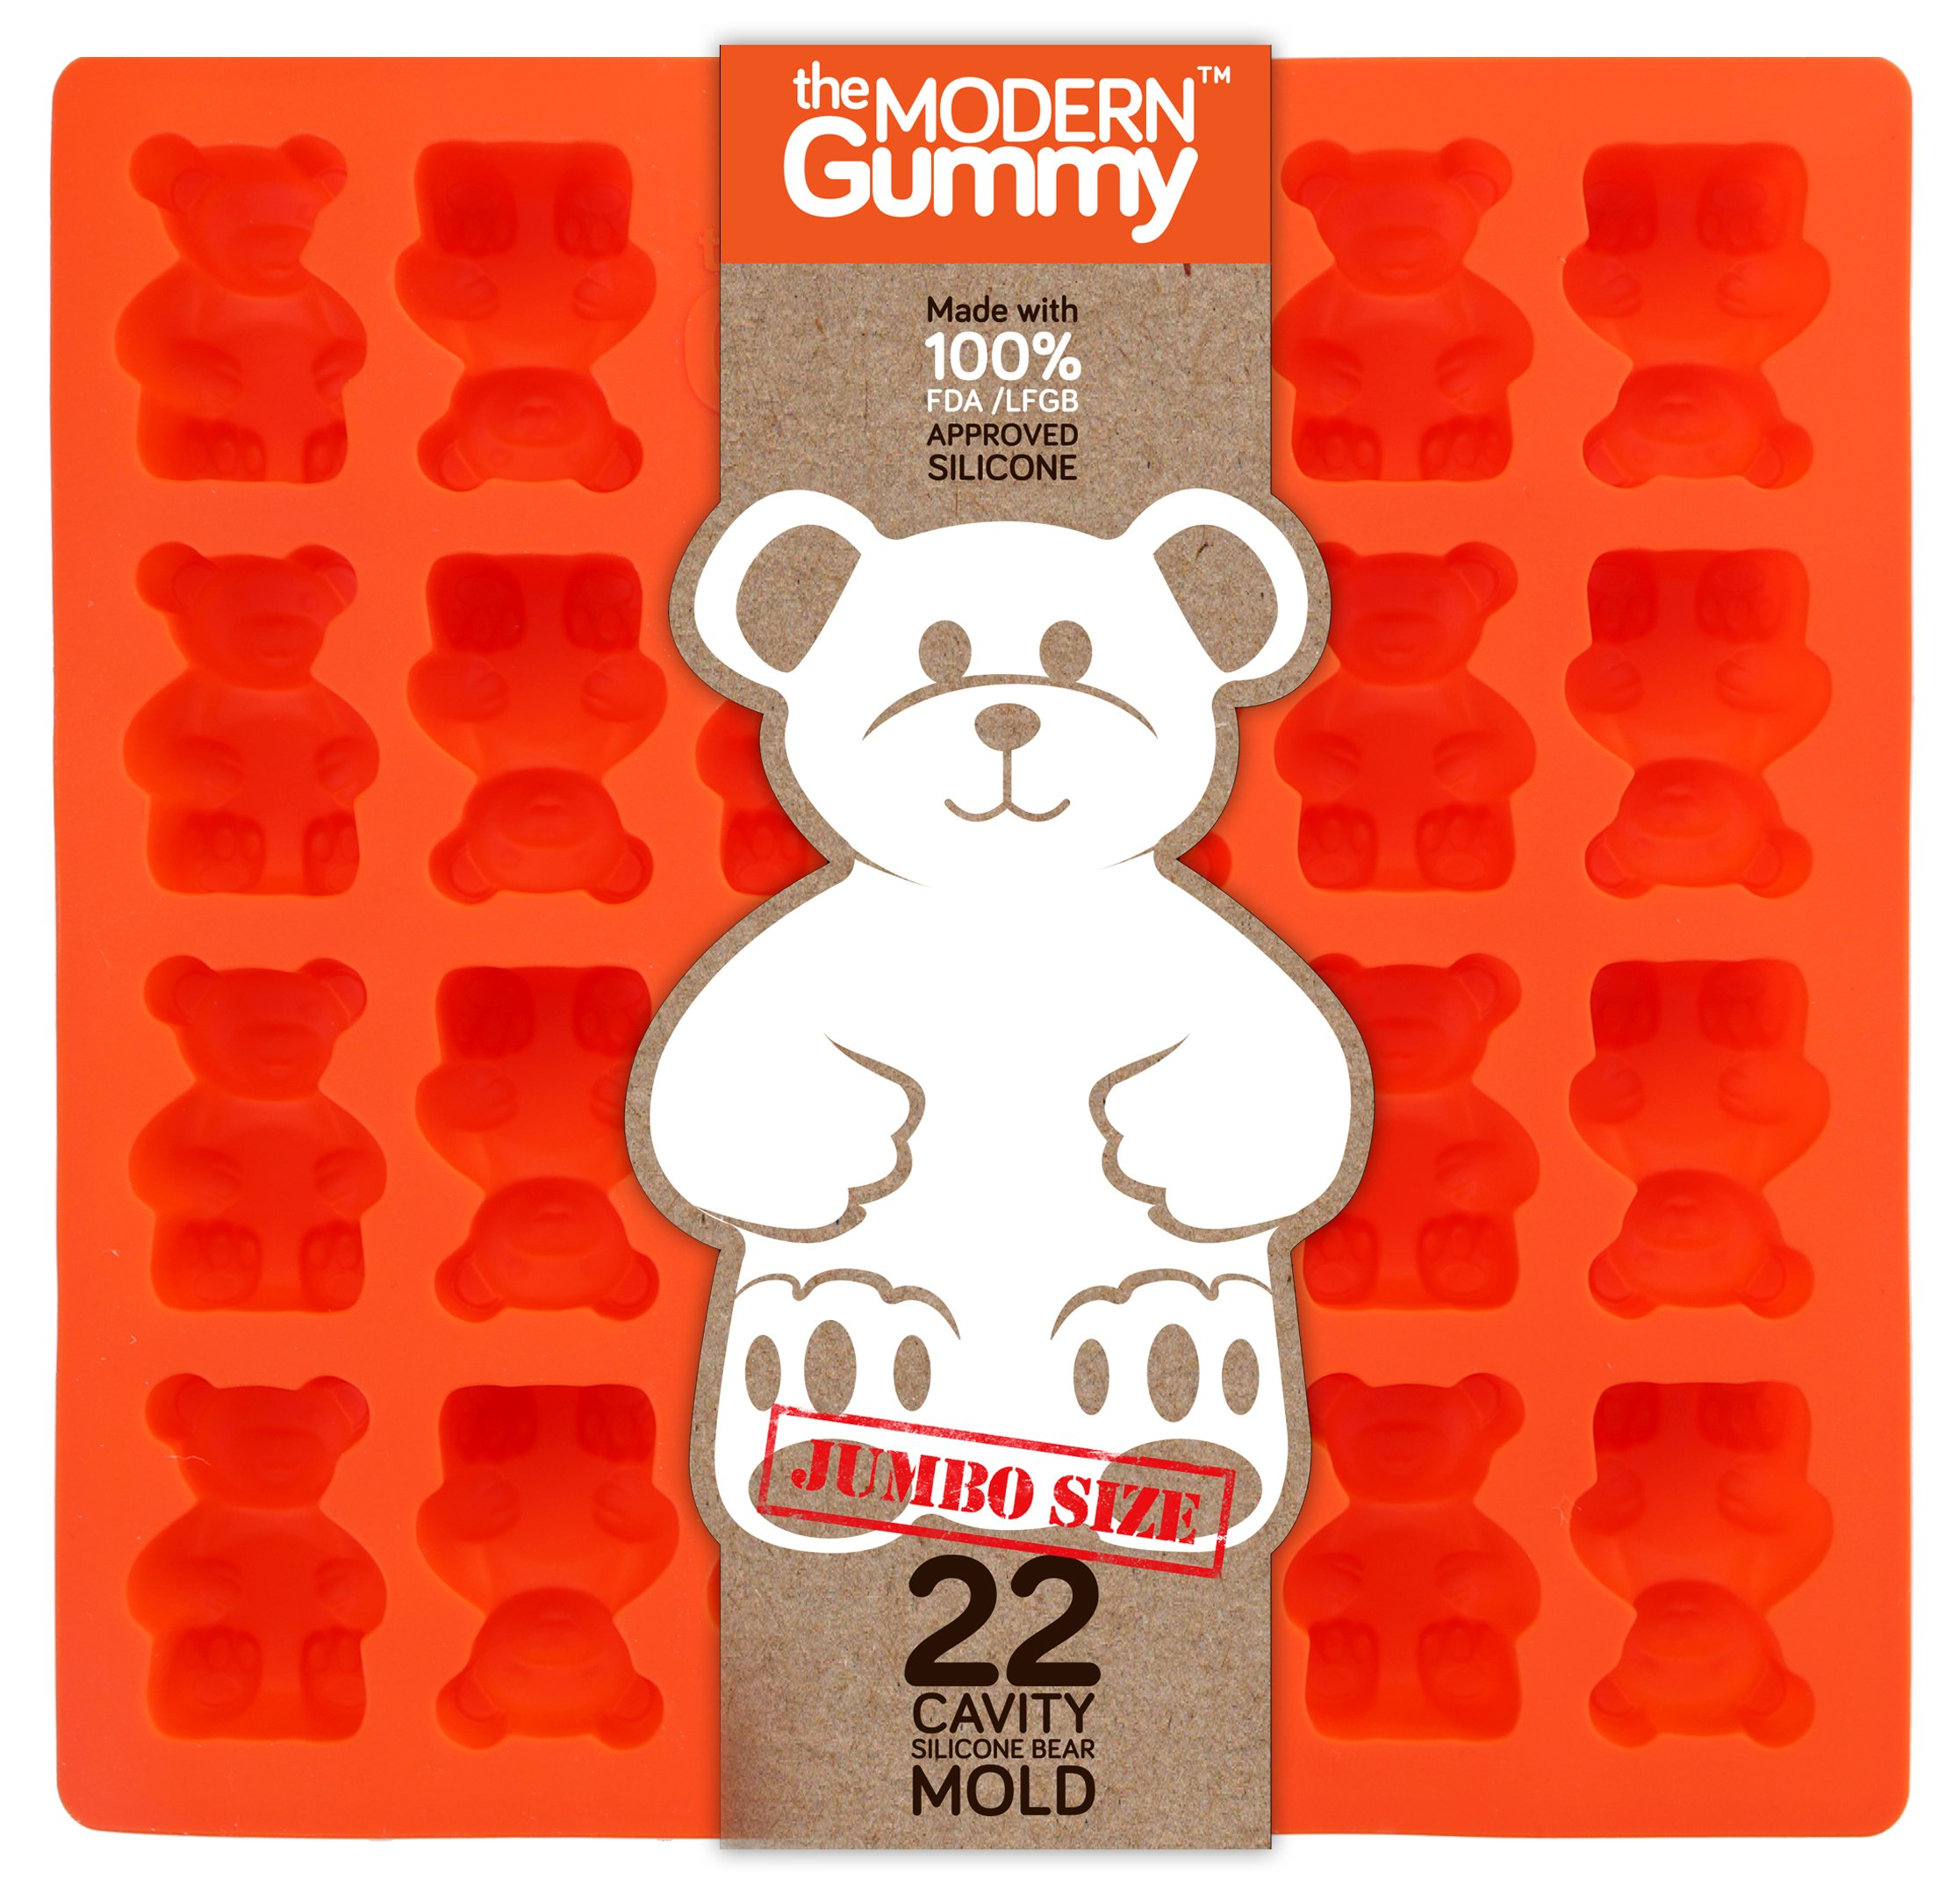 JUMBO size GUMMY BEAR Mold by the Modern Gummy + Recipe PDF, PROFESSIONAL GRADE PURE LFGB SILICONE, 22 cavity, Candy, Soap Molds, Gelatin Shots, Cupcake topper, Chocolate Making, Ice tray (1)